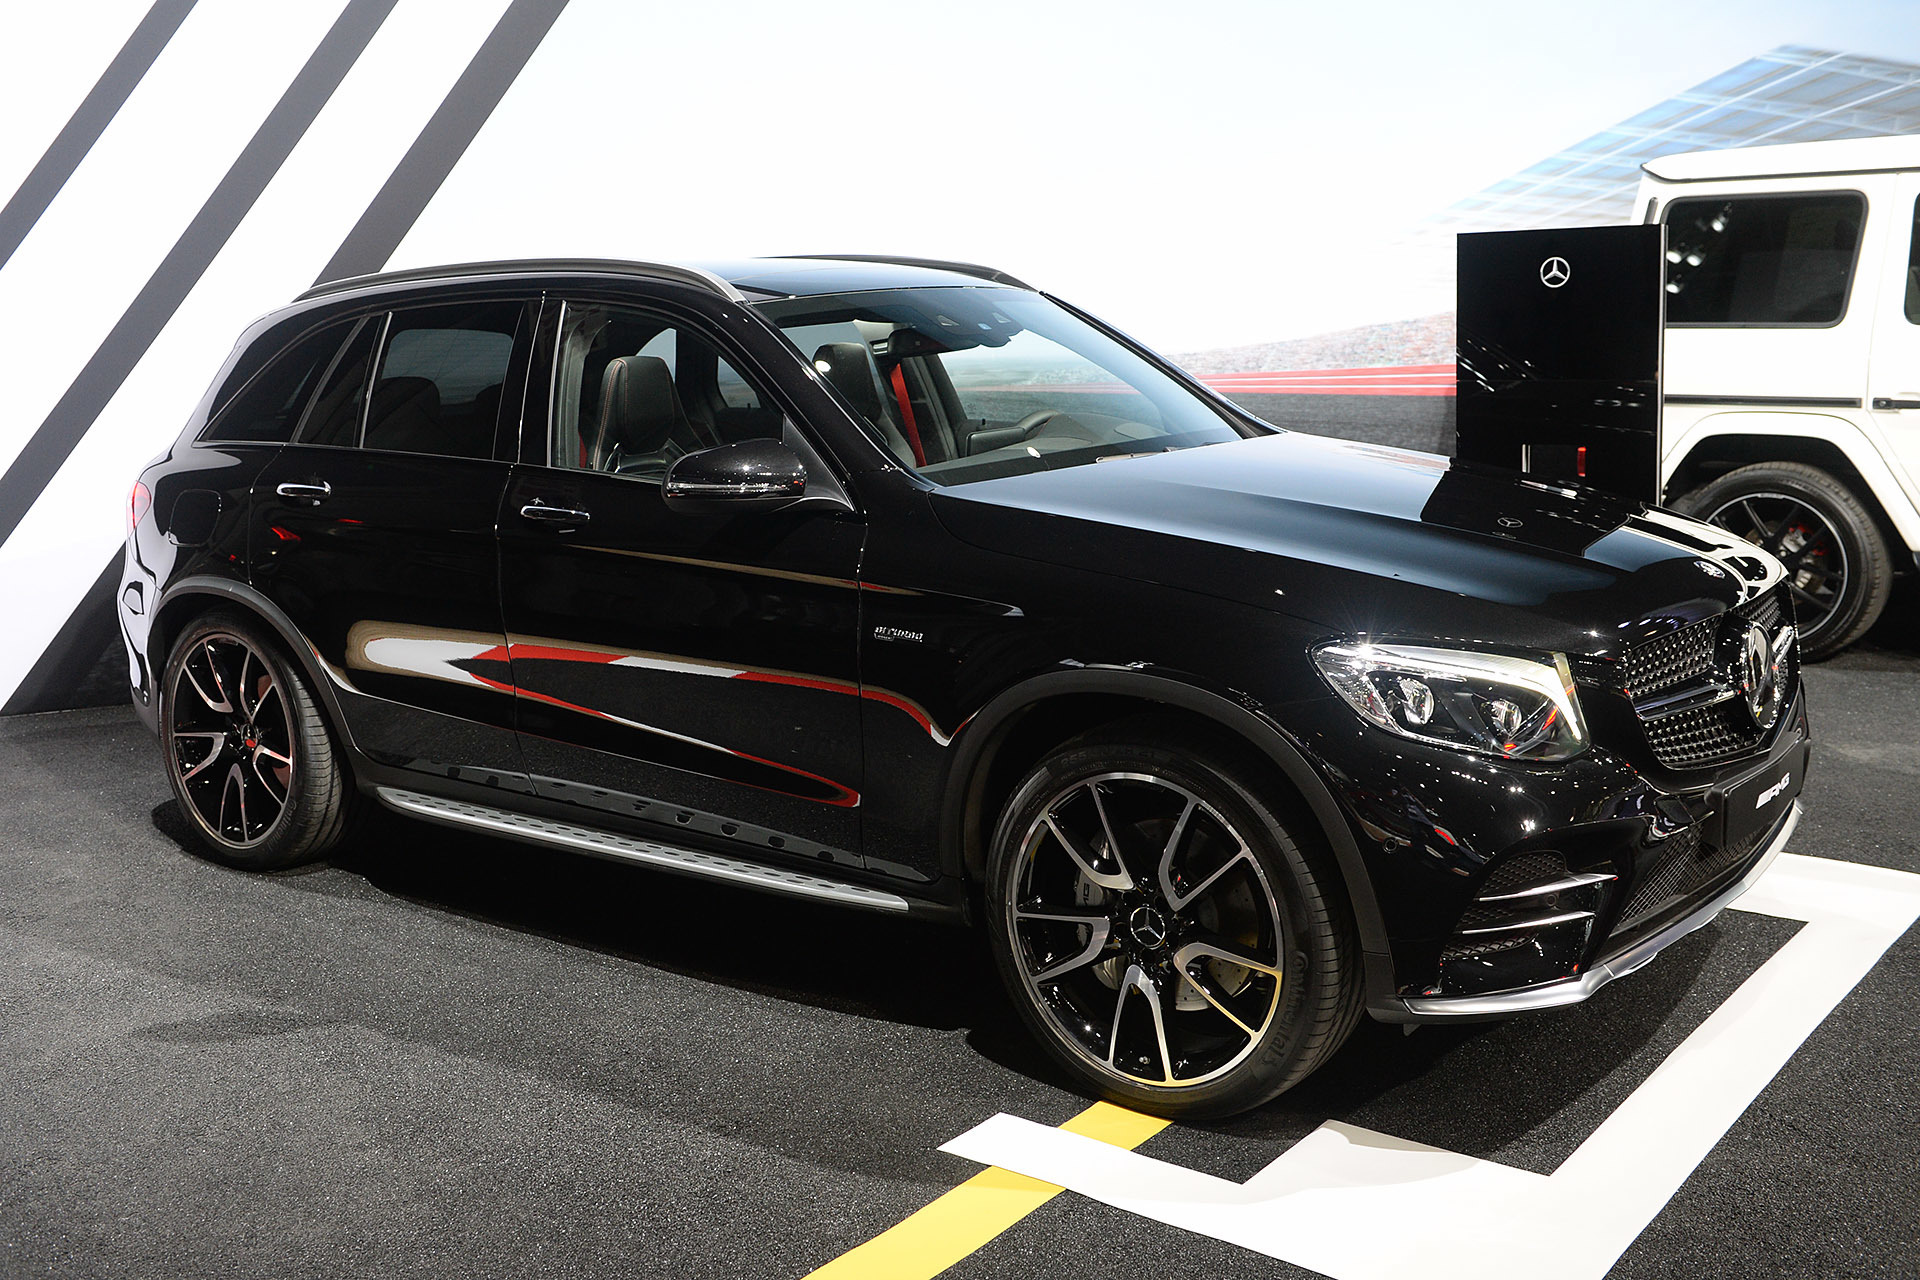 2017 mercedes amg glc43 2016 new york autoshow autoblog for Mercedes benz glc43 amg